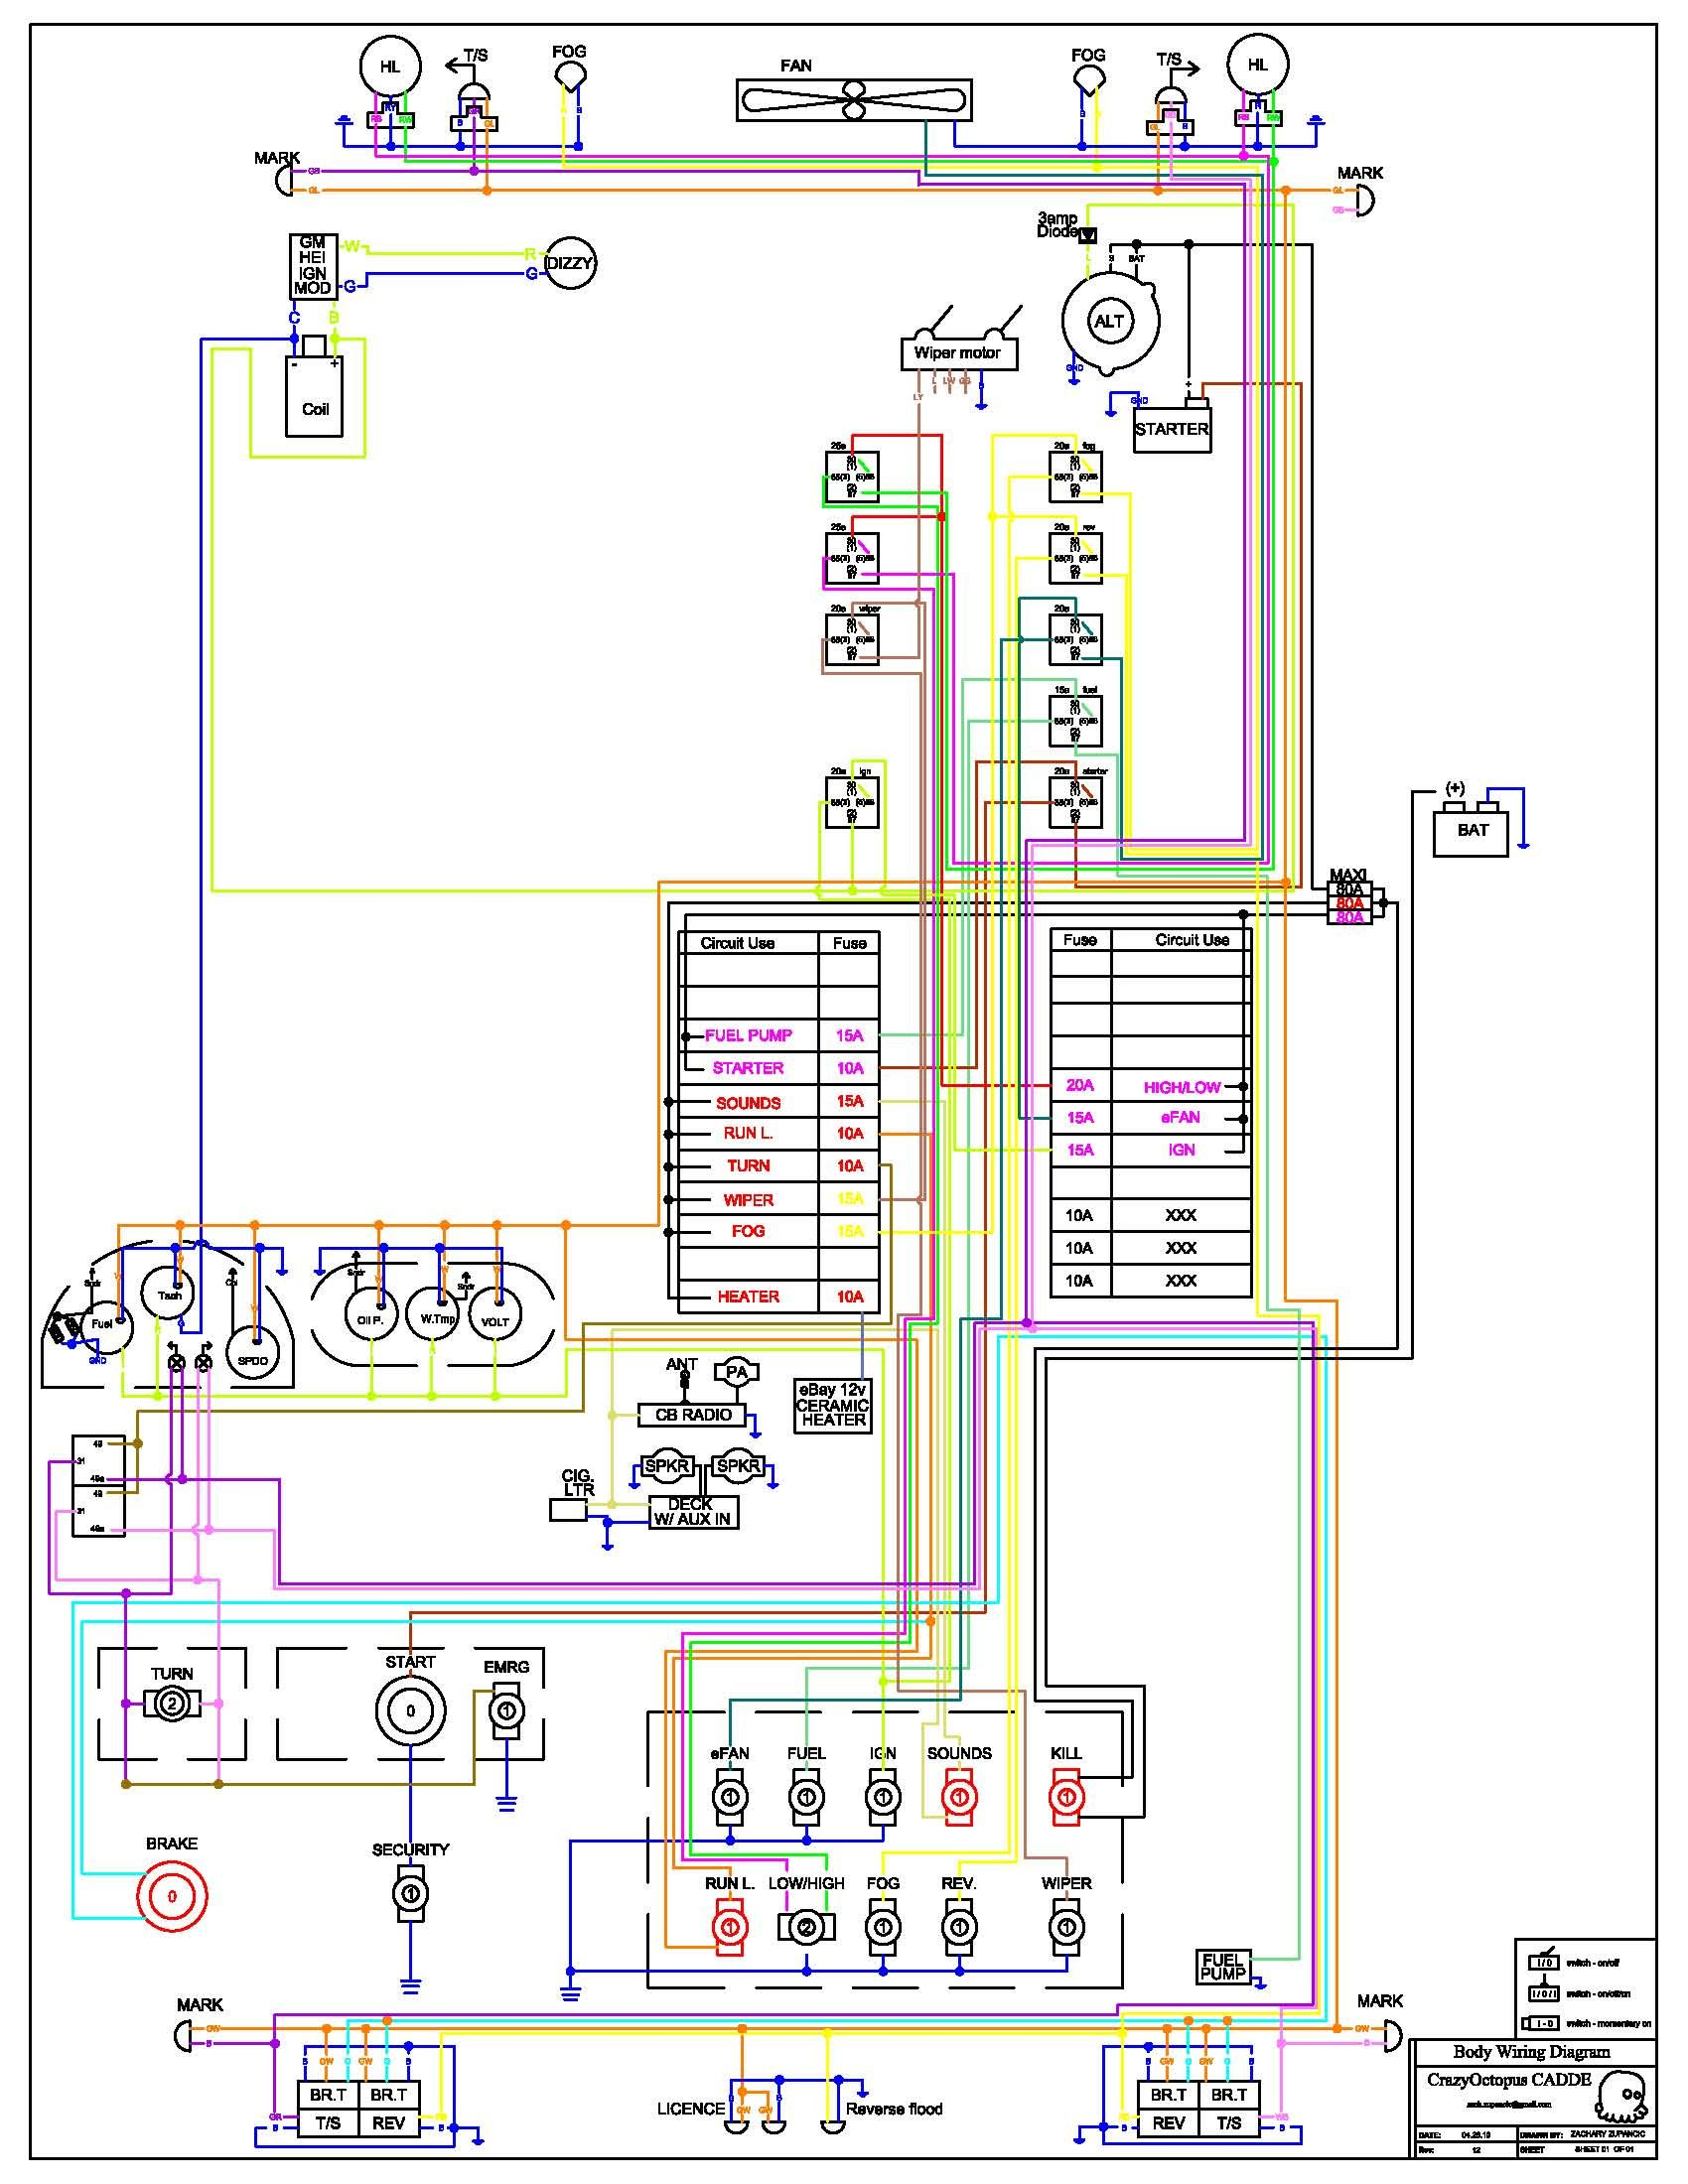 f0a9ebc3a4a2529096f135d5fec5faaa race car wiring diagrams diagram pinterest cars racing mower wiring diagram at reclaimingppi.co